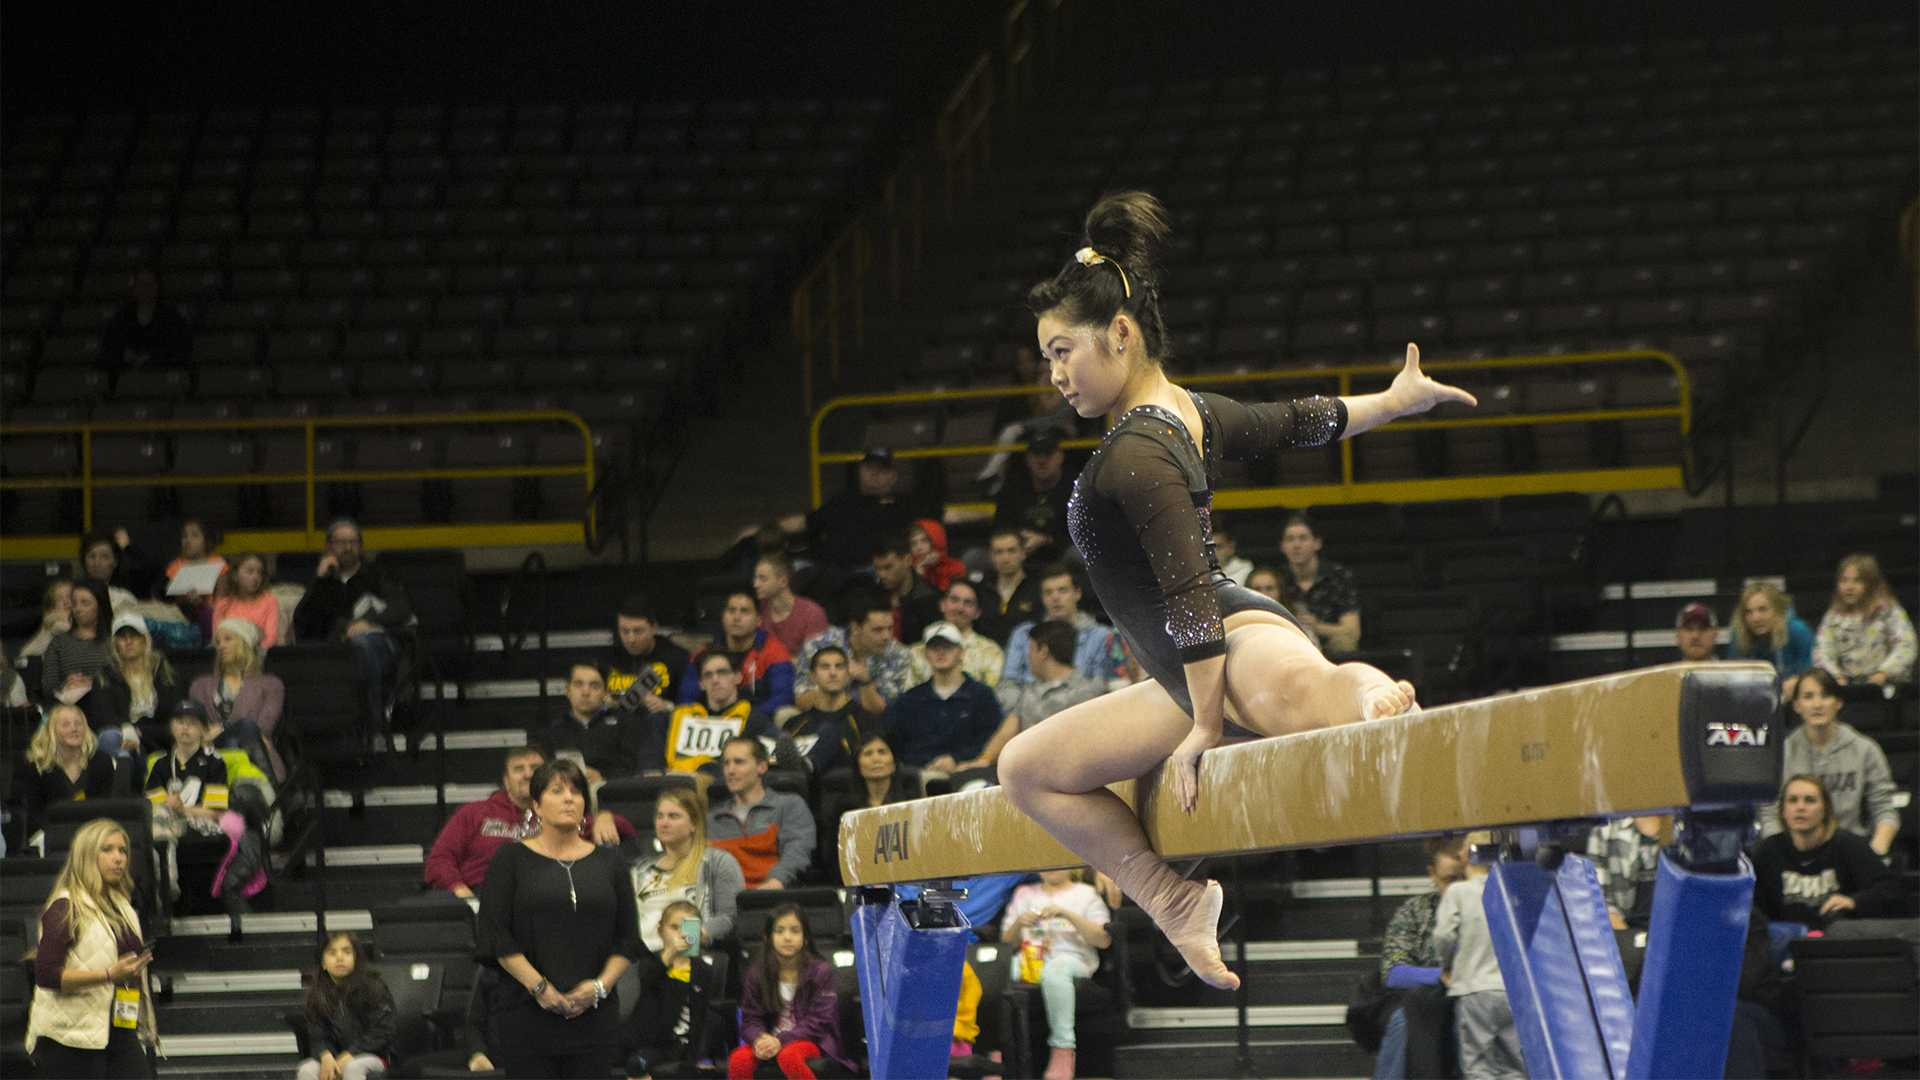 Iowa's Clair Kaji performs on the beam during the Iowa/Ohio State gymnastics meet in Carver-Hawkeye Arena on Friday, Jan. 19, 2018. The GymHawks defeated the Buckeyes, 195.725 to 195.300, to win their home opener. (Lily Smith/The Daily Iowan)